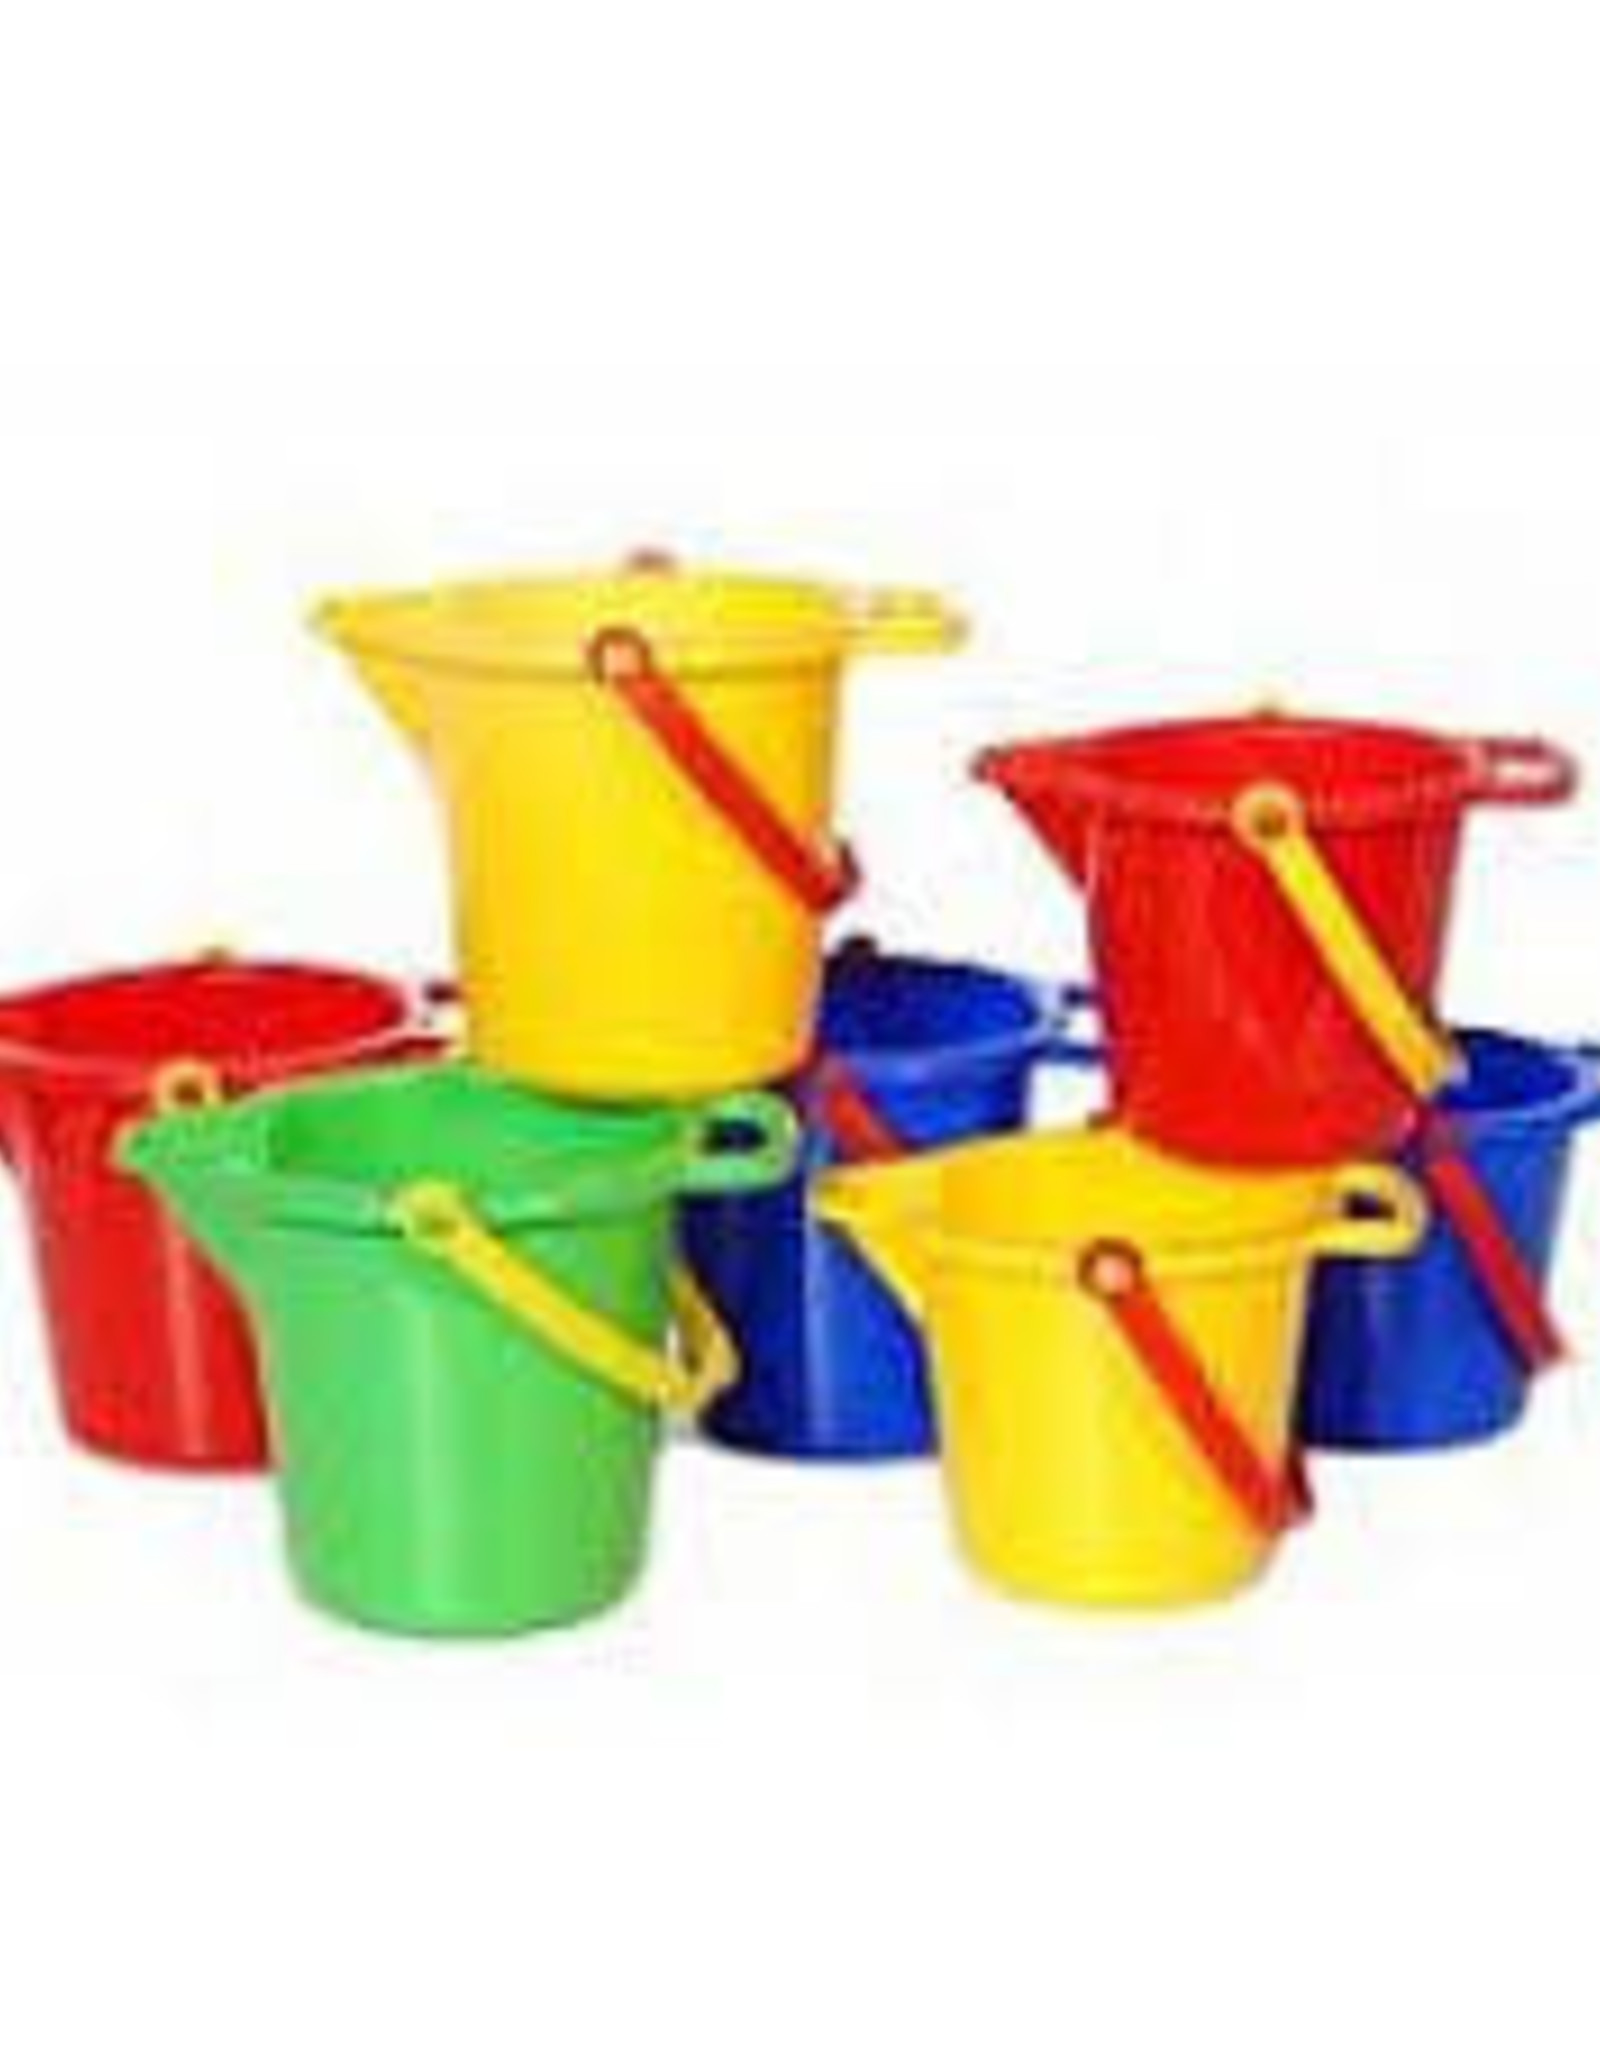 The Original Toy Company Bucket Time w/ Spout